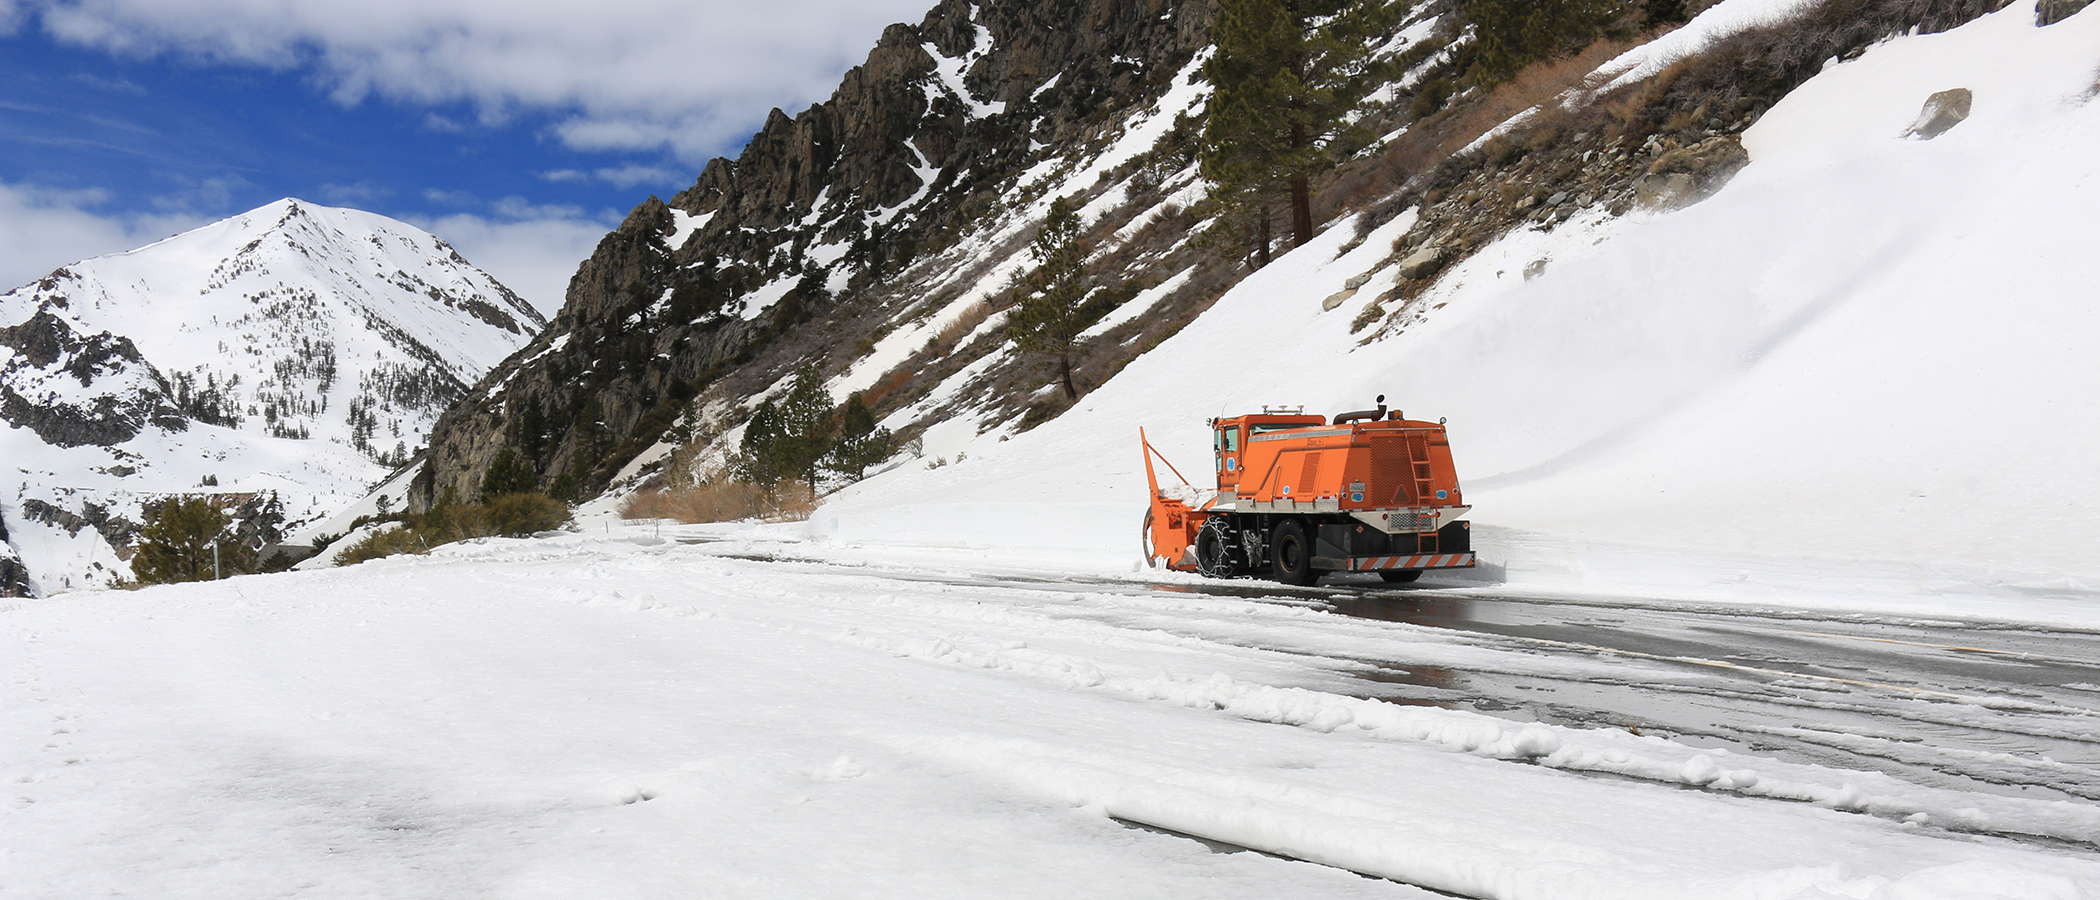 Orange Caltrans show removal vehicle next to a tall bank of snow with snow in the foreground.